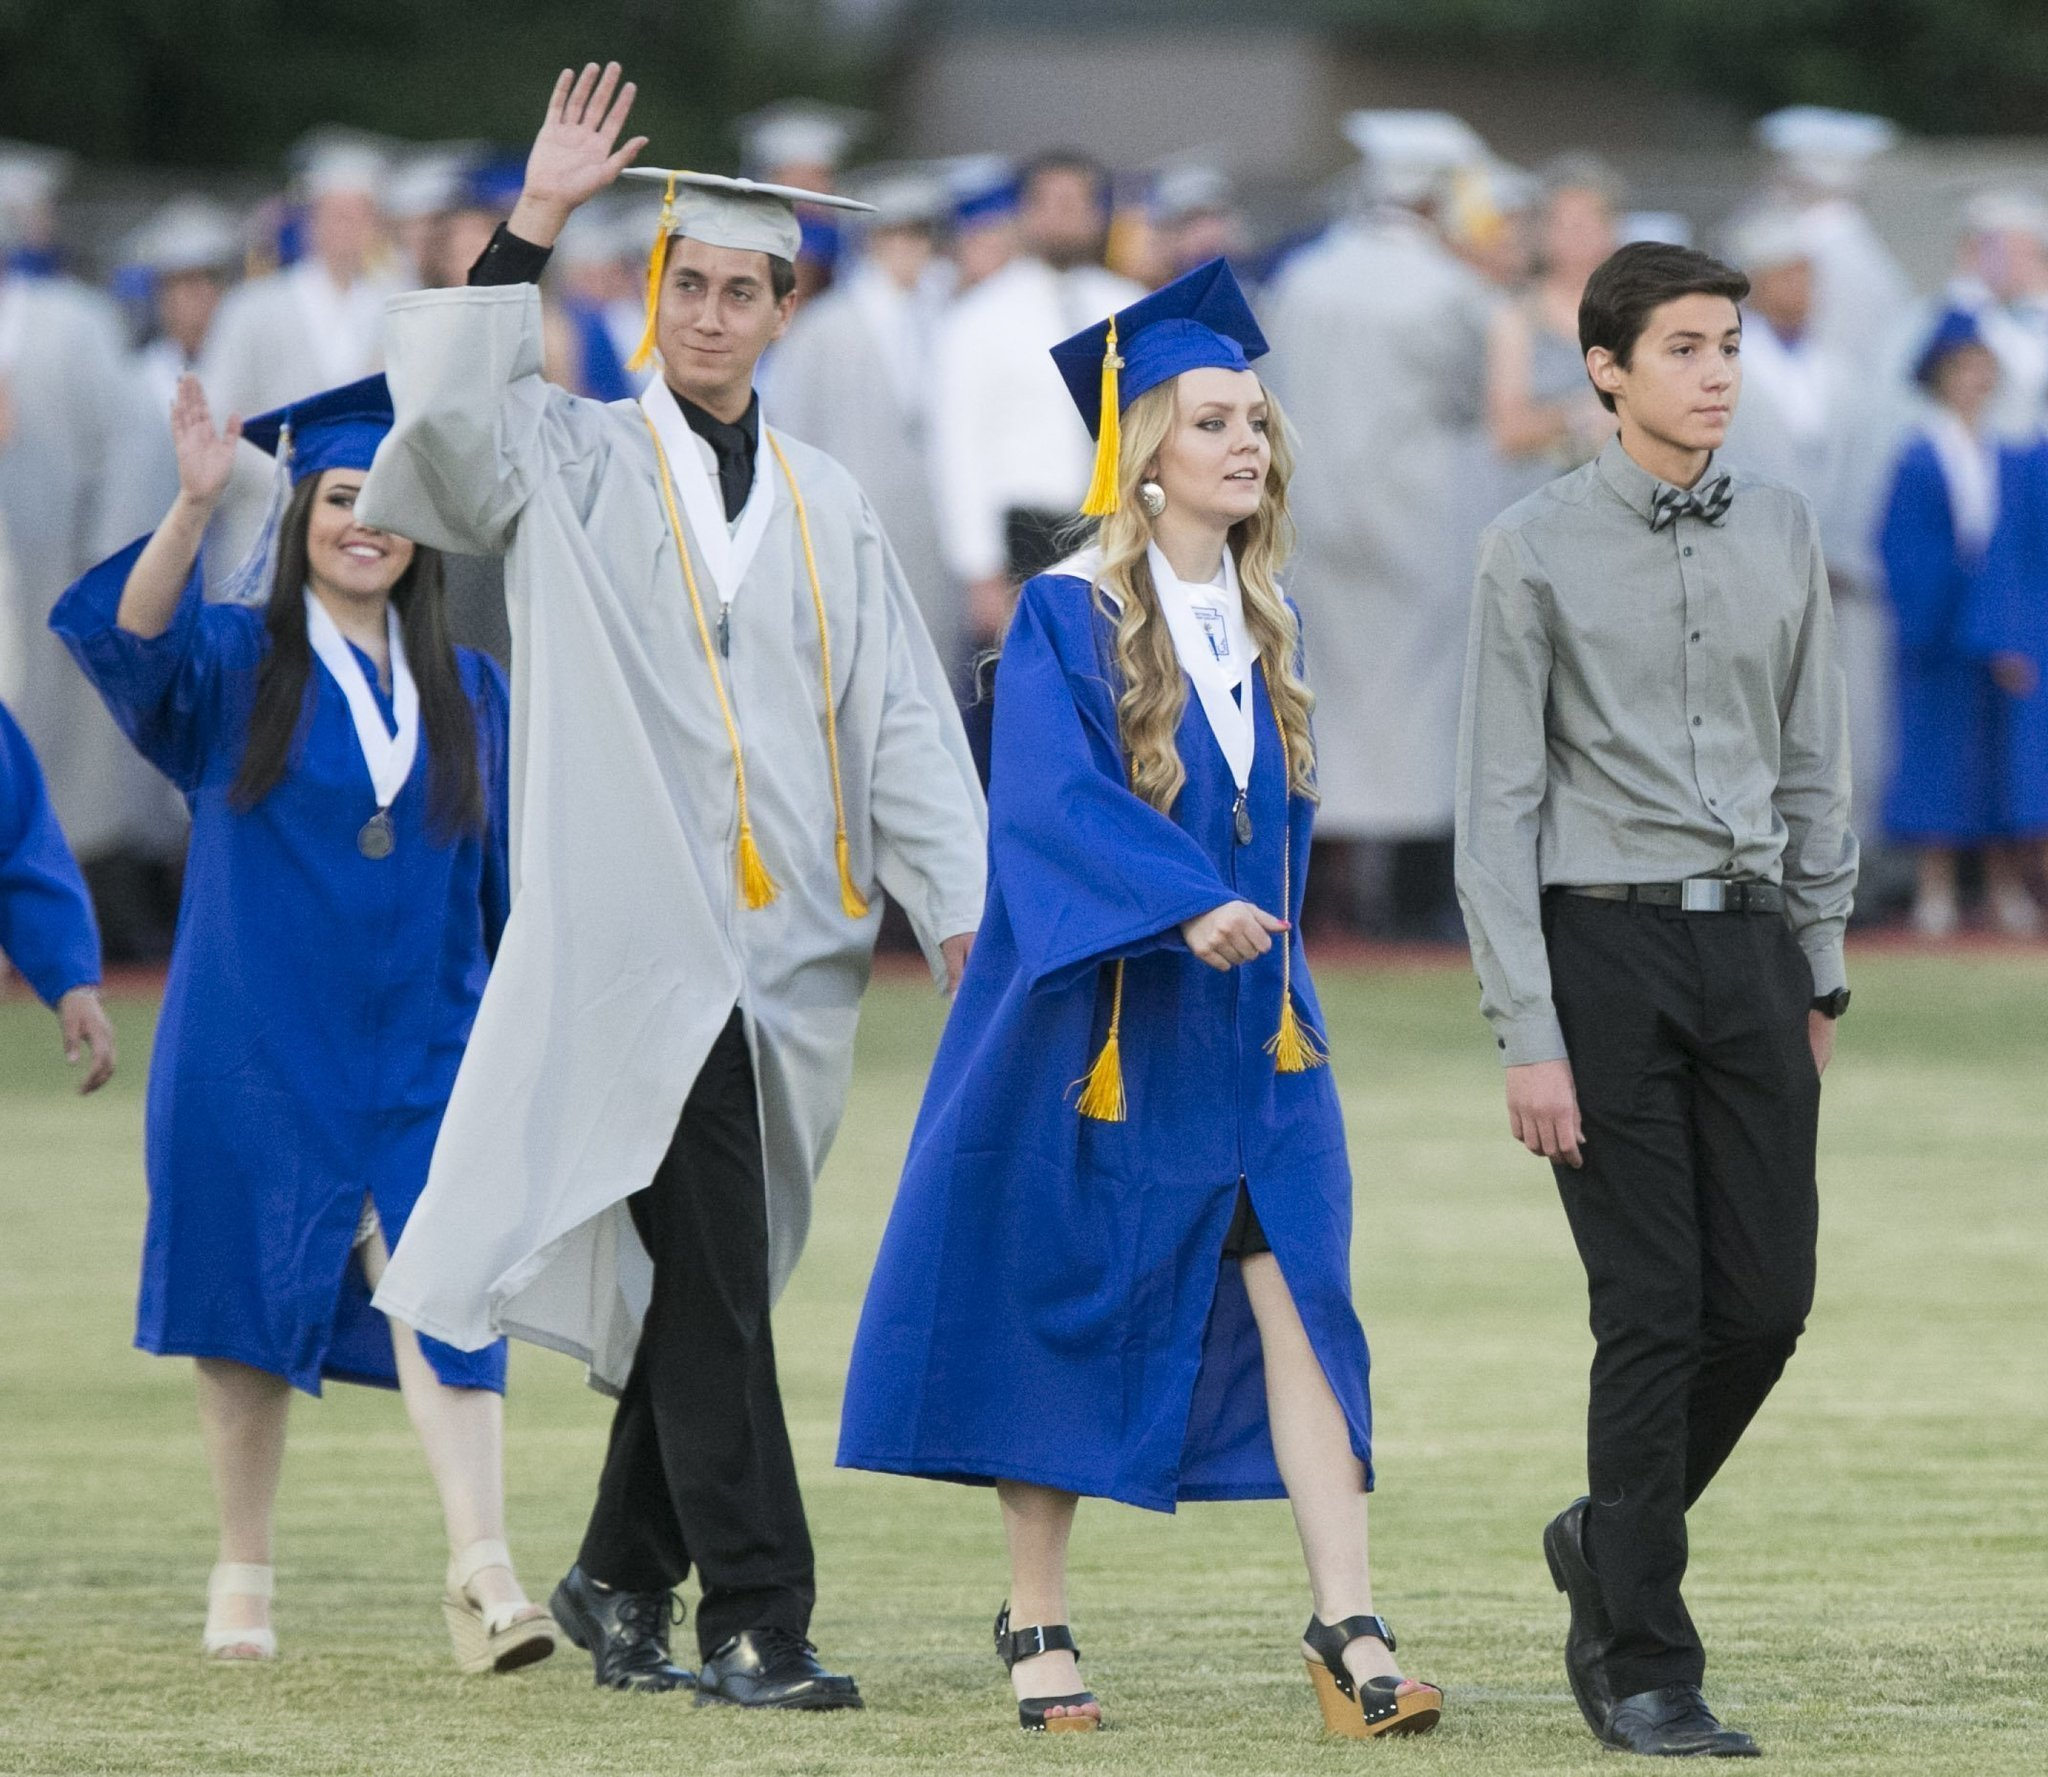 Cancer survivor stunned by attention over graduation denial - The ...